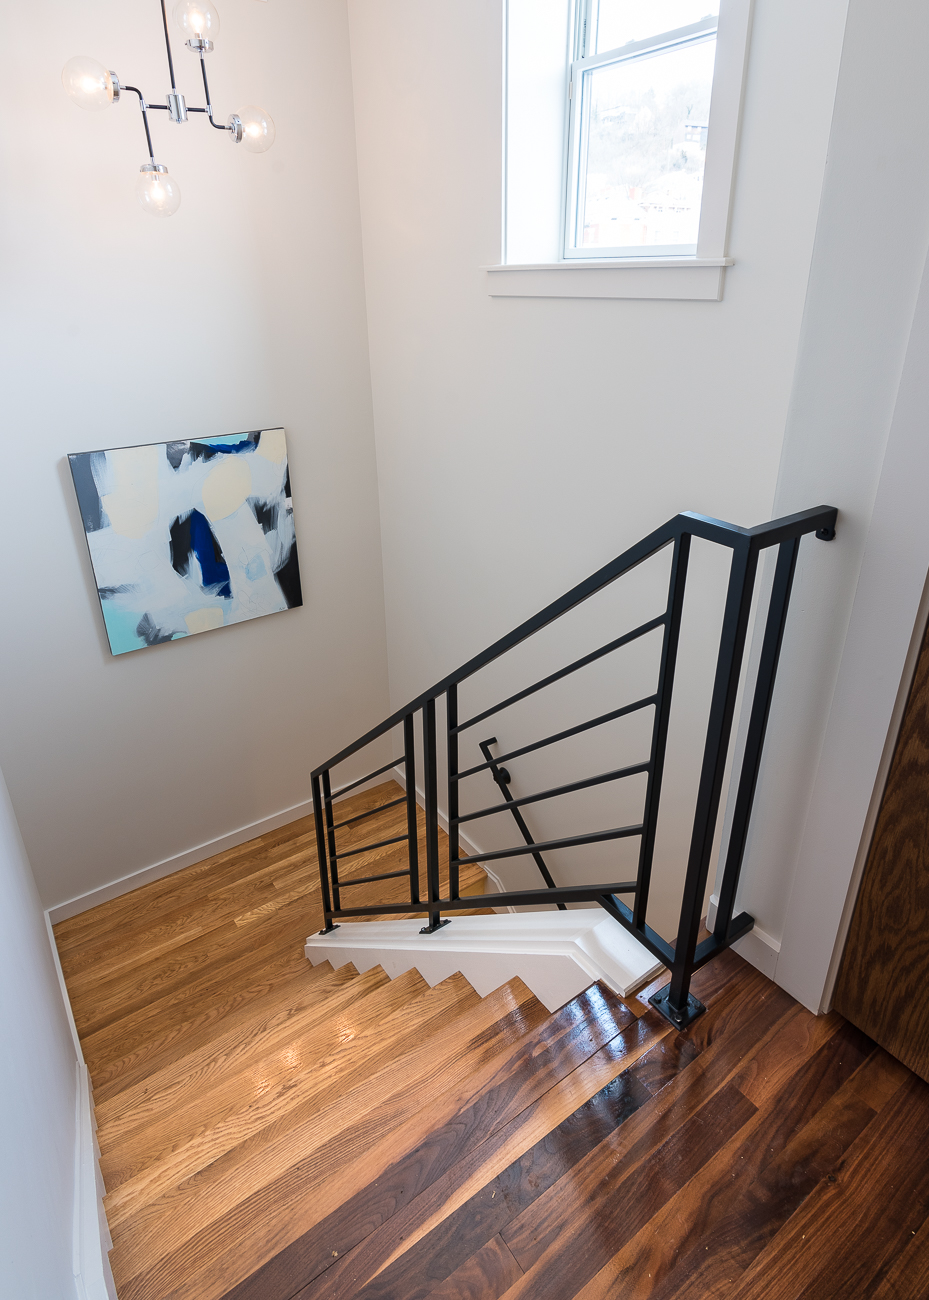 Staircase to the third floor / Image: Phil Armstrong, Cincinnati Refined // Published: 2.17.19